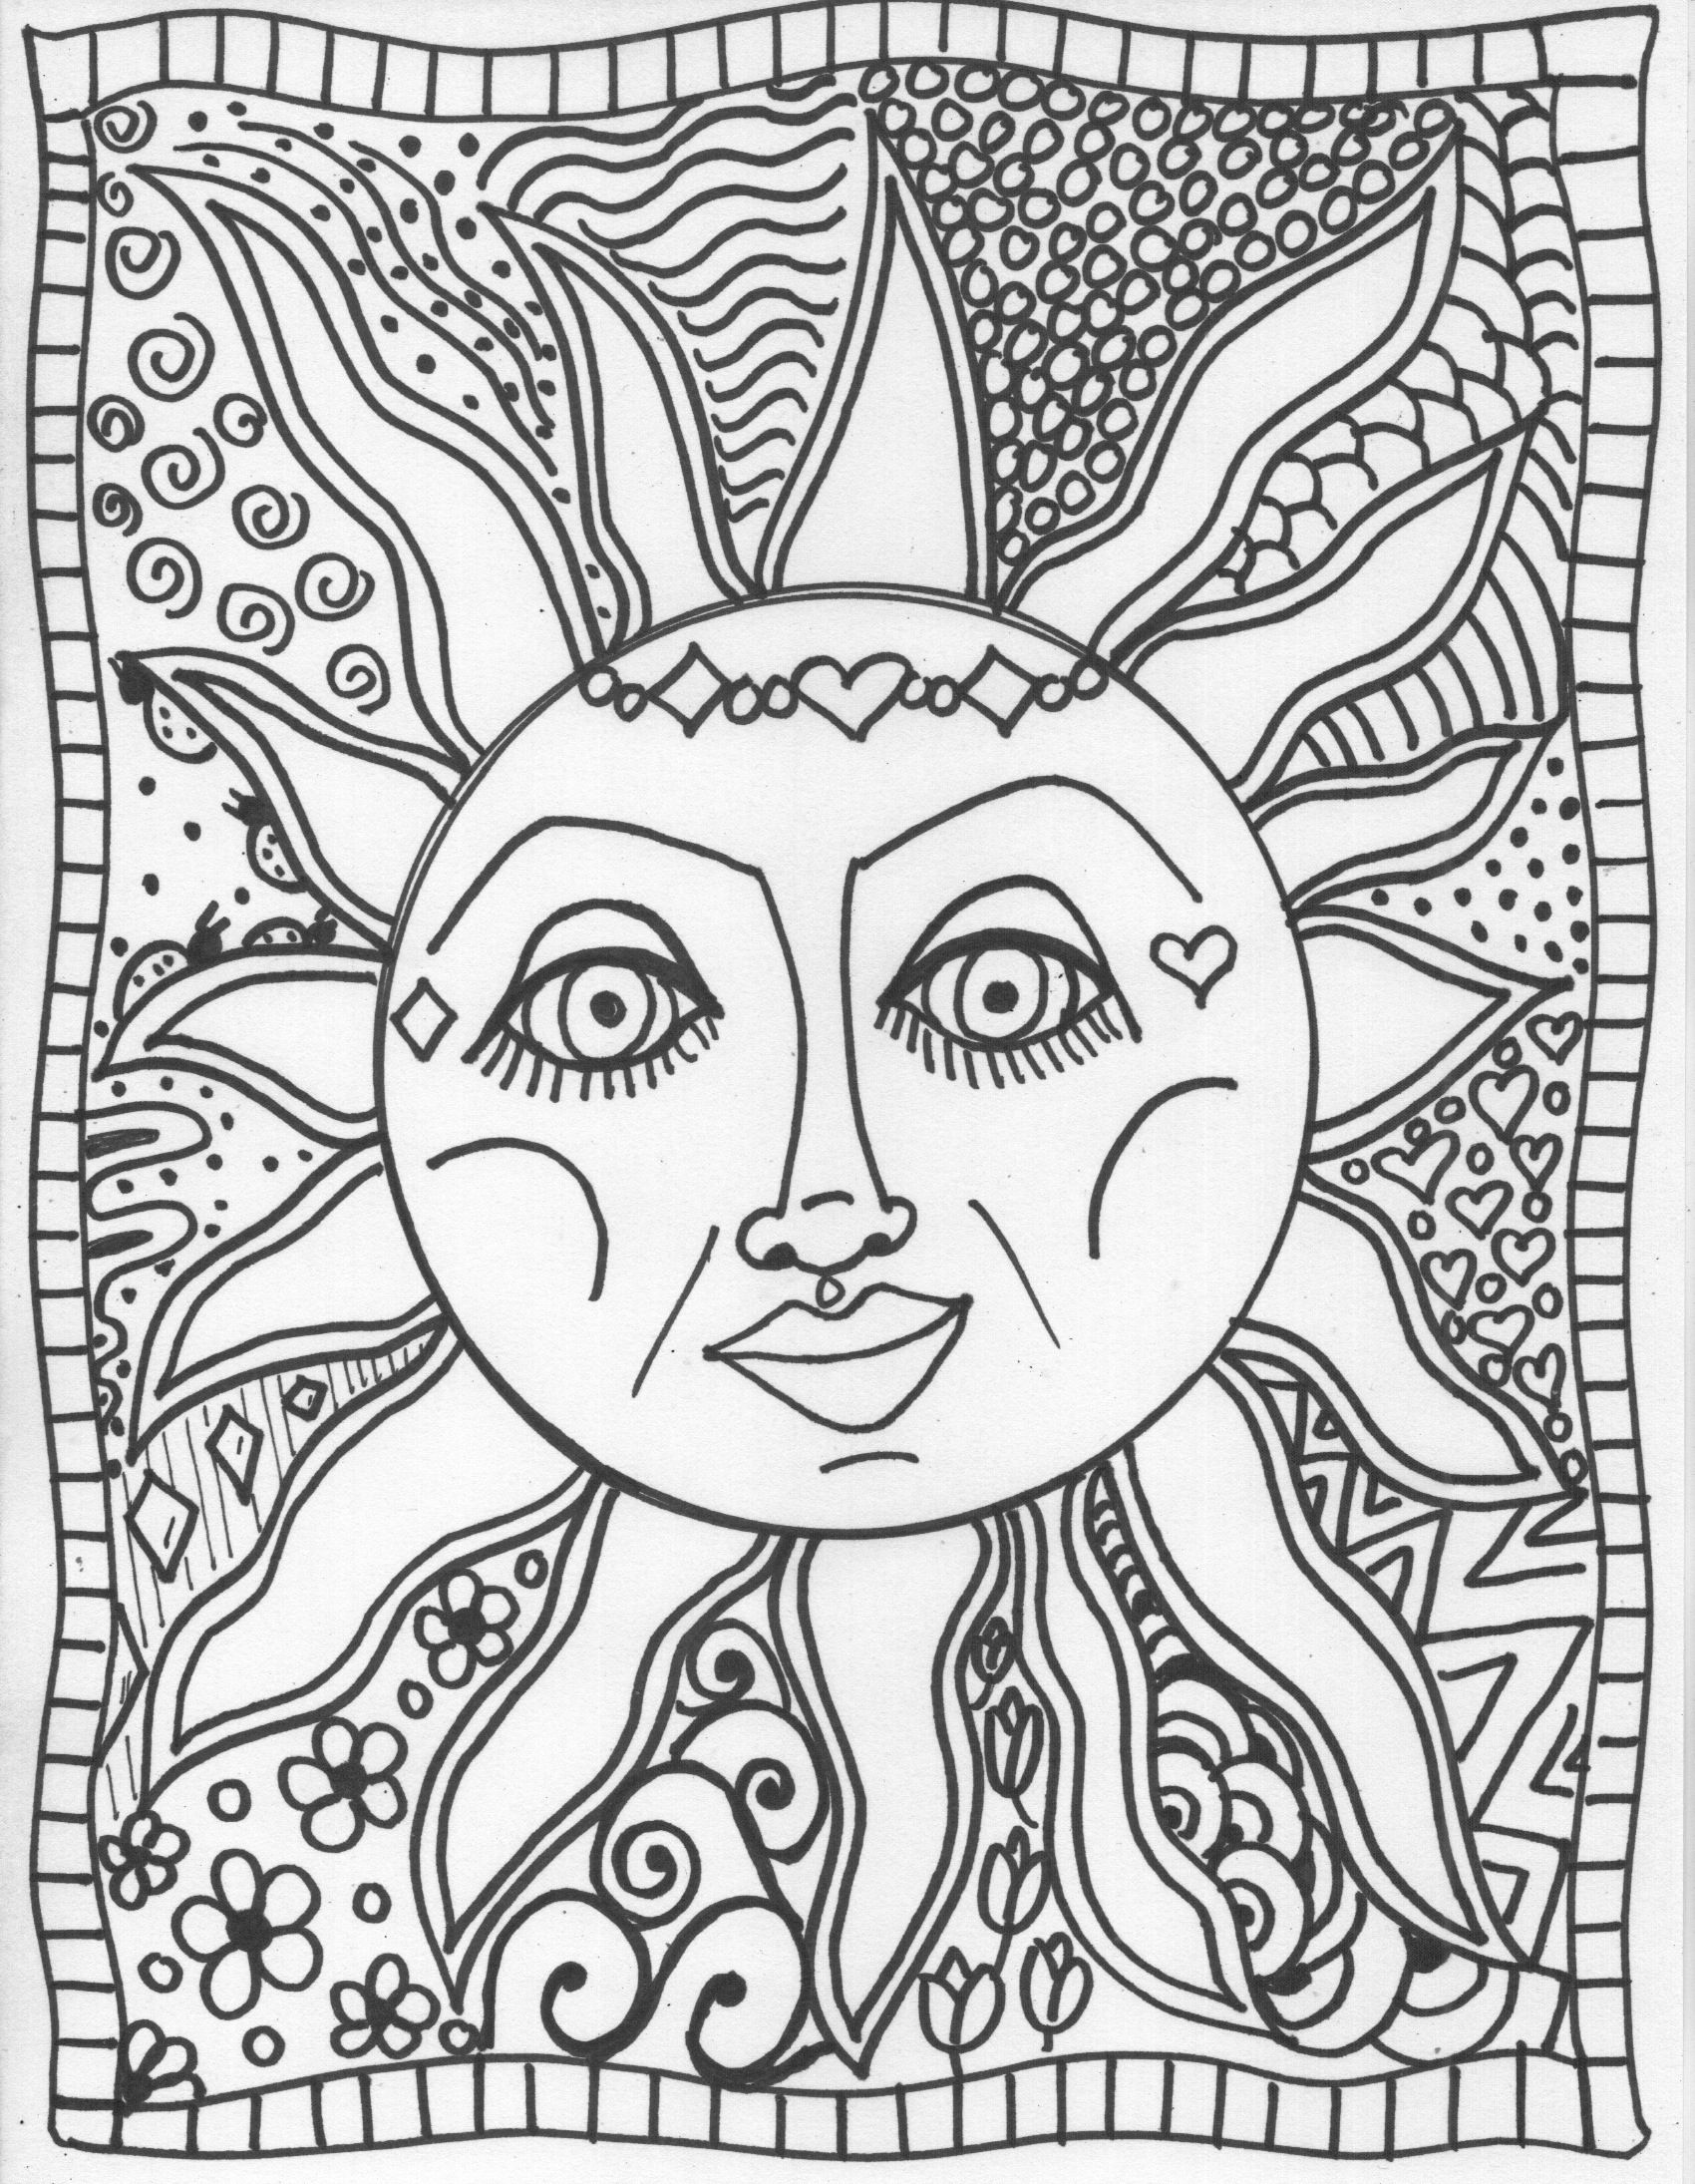 coloring book pages…design your own coloring book | iColor "|1700|2190|?|187c48a0bf2312ab2bb9941ad8607ee7|False|UNLIKELY|0.30823174118995667